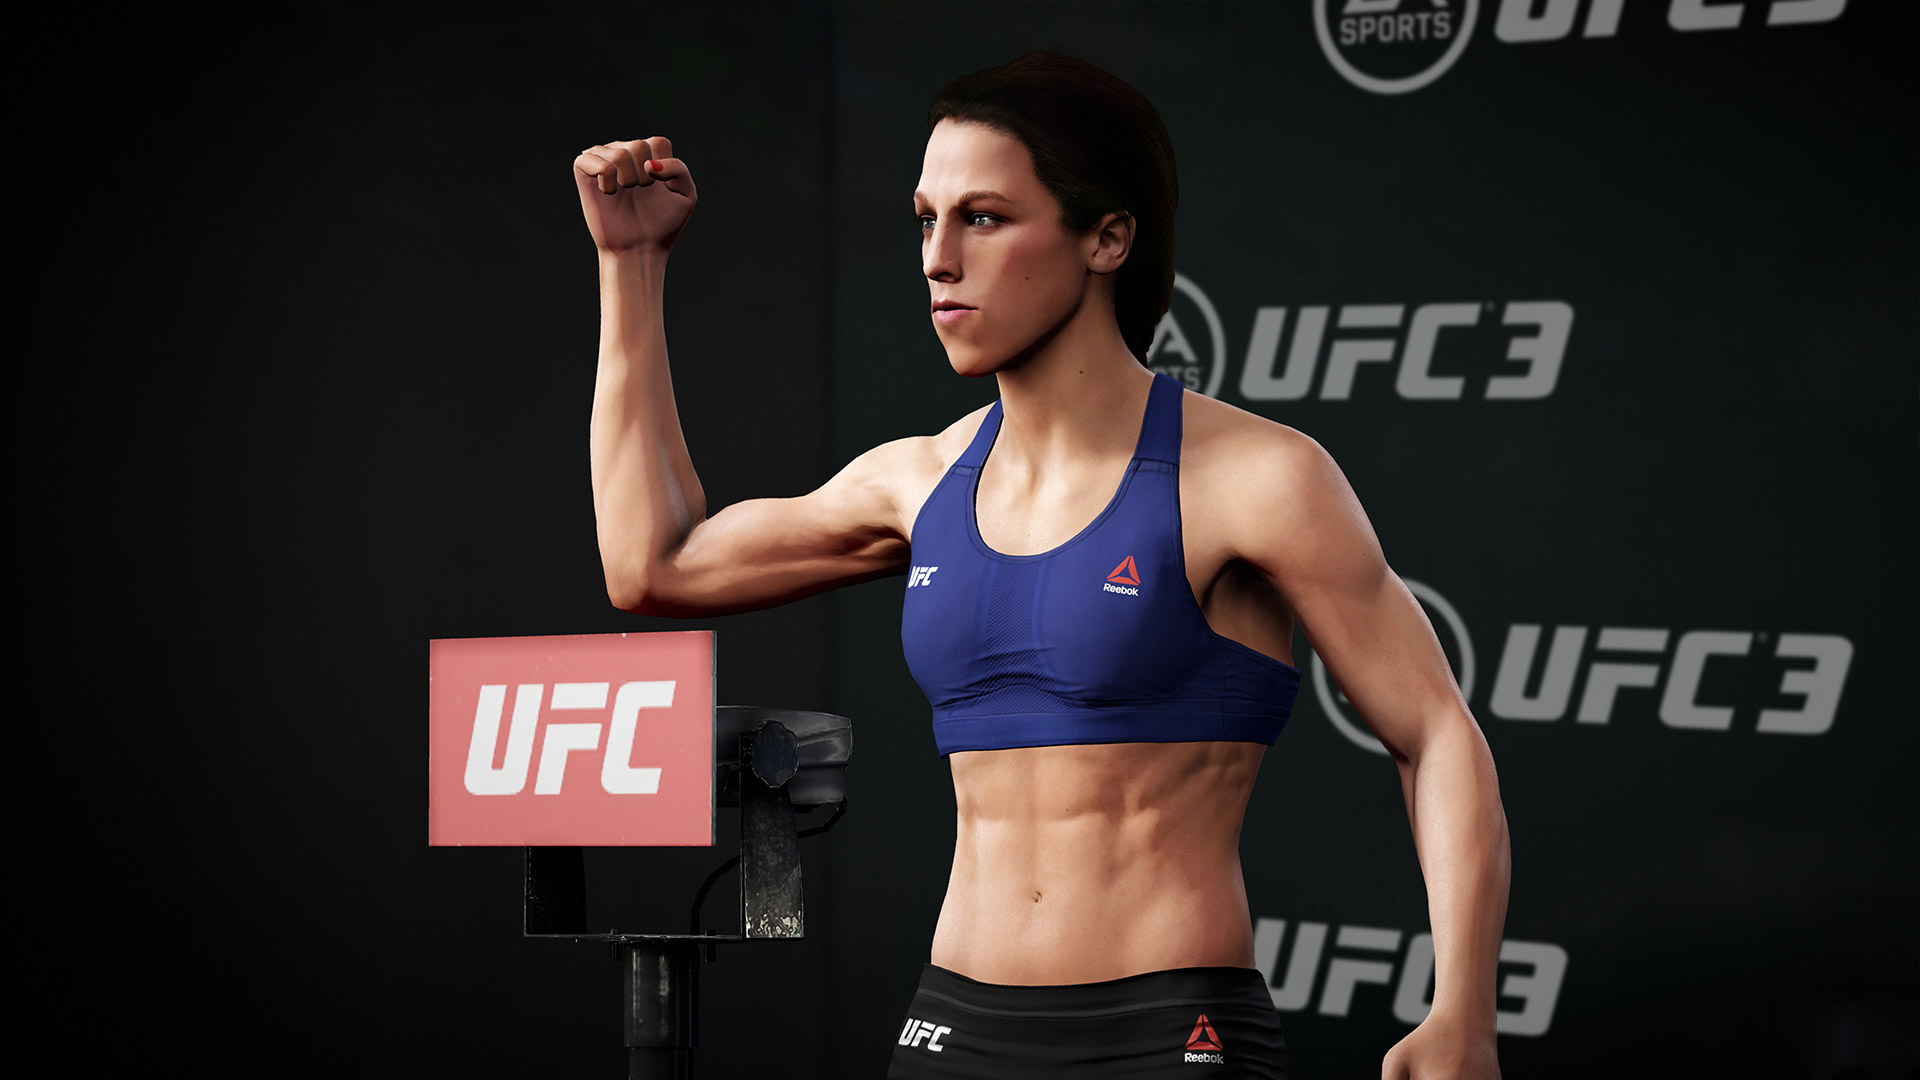 Free EA Sports UFC 3 Wallpaper in 1920x1080